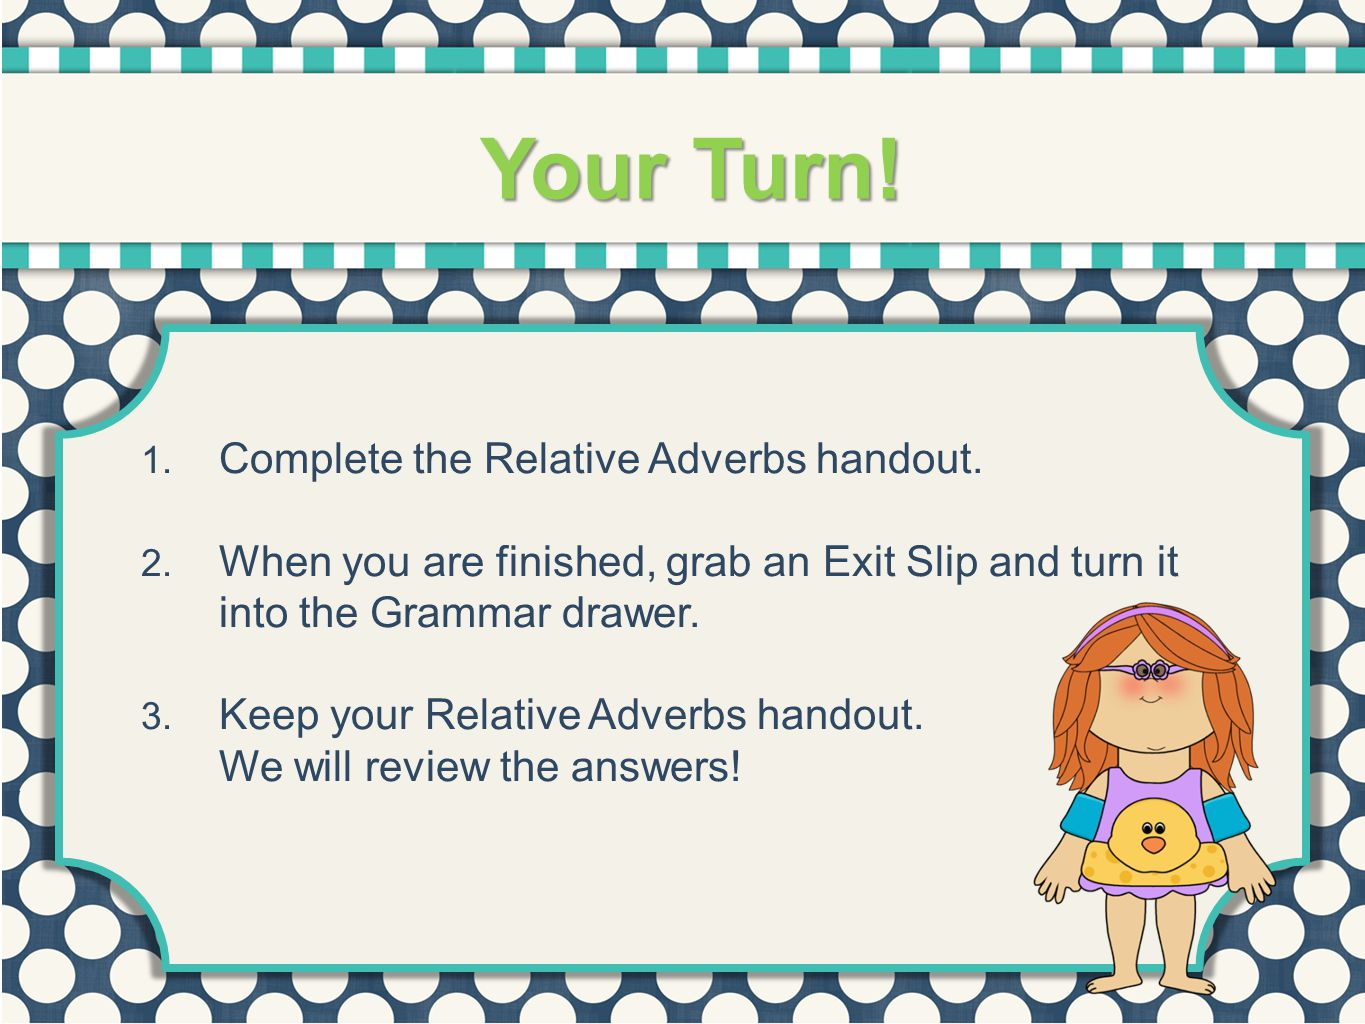 Your Turn! Complete the Relative Adverbs handout.